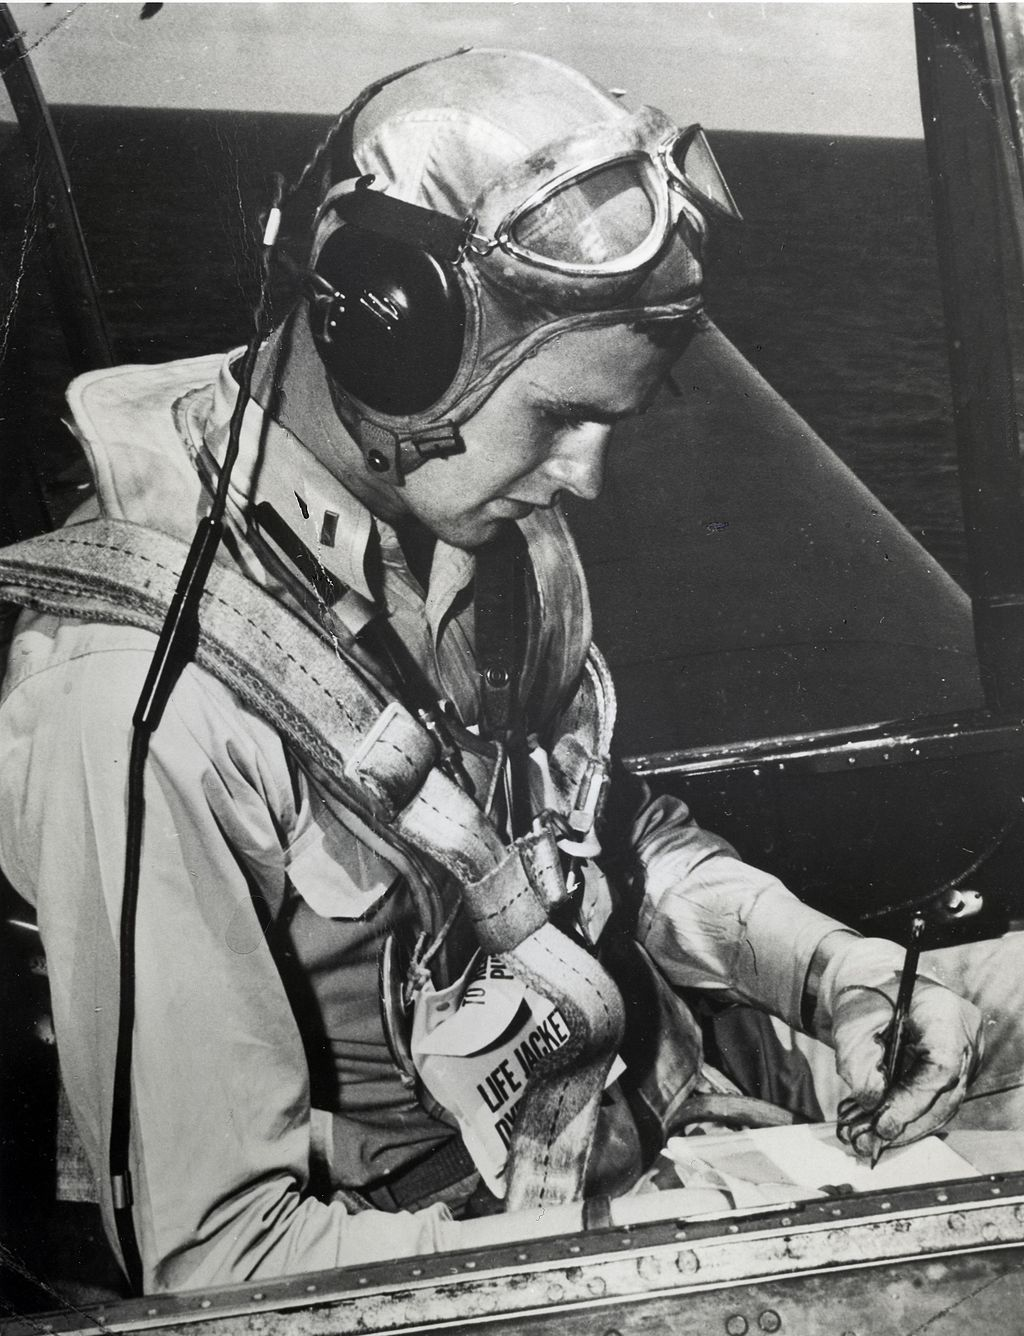 George_H.W._Bush_seated_in_a_Grumman_TBM_Avenger,_circa_1944_(H069-13).jpg